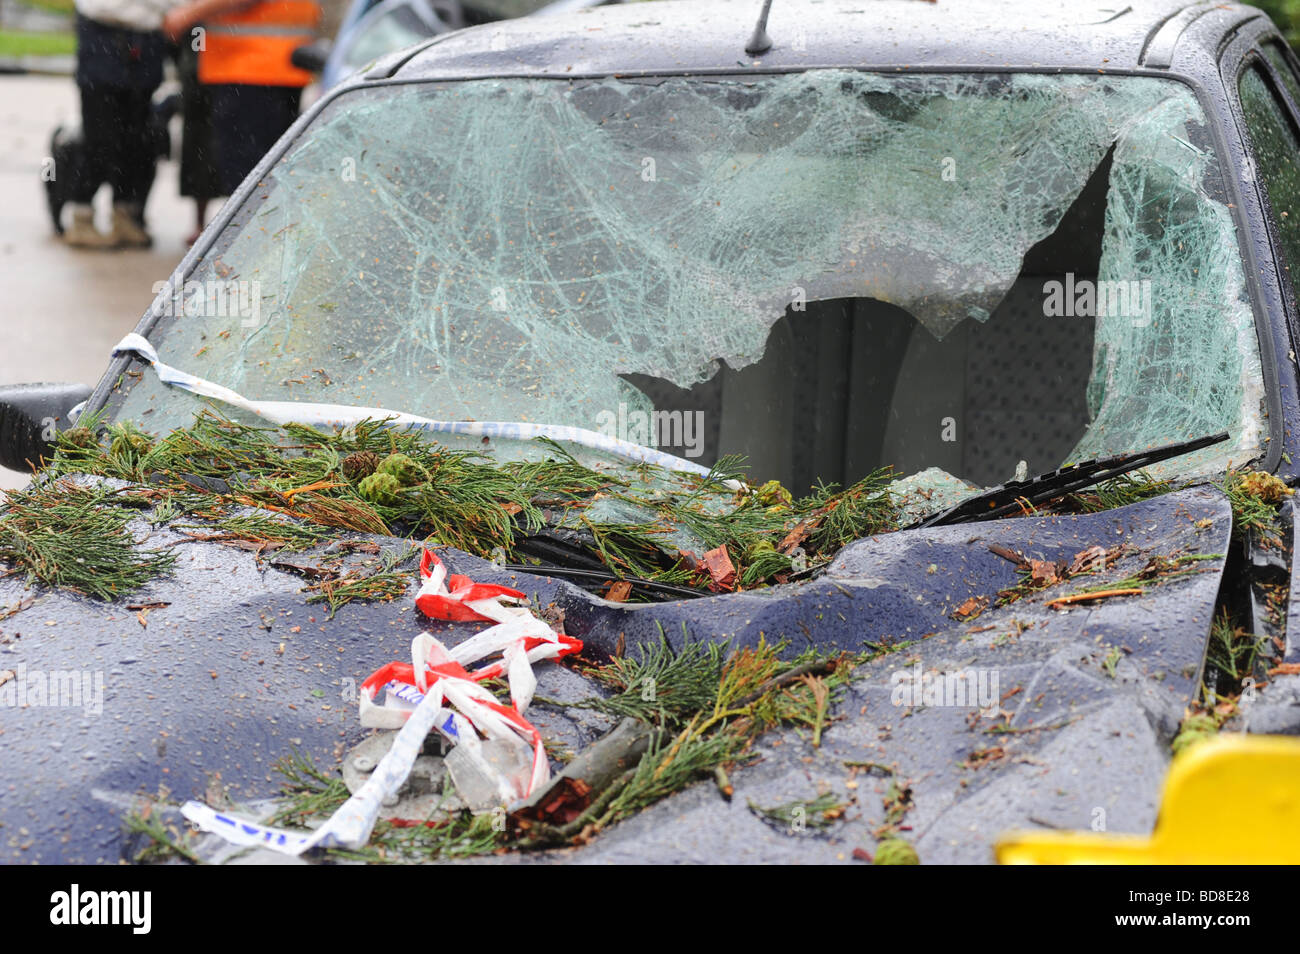 Damage done to a car after a tree fell on top of it after being struck by lightning during a severe summer storm Stock Photo